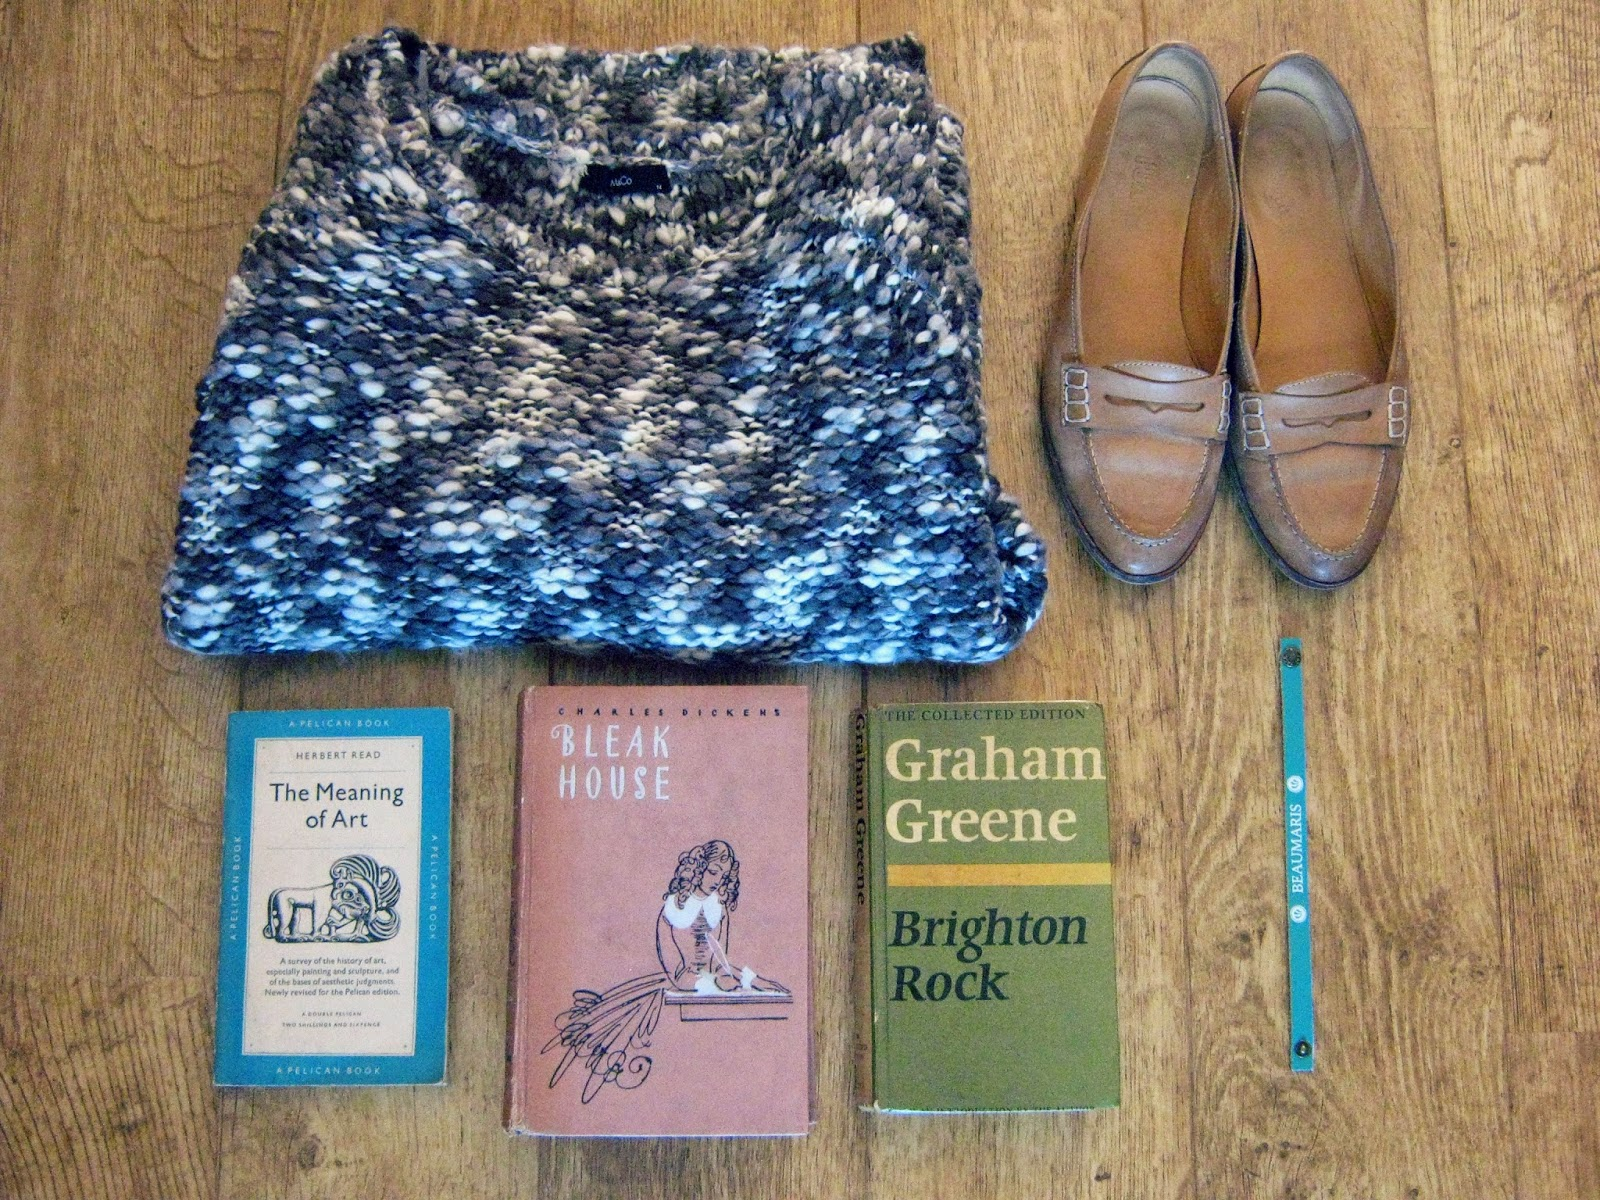 Thrifty Jumper Loafers Books